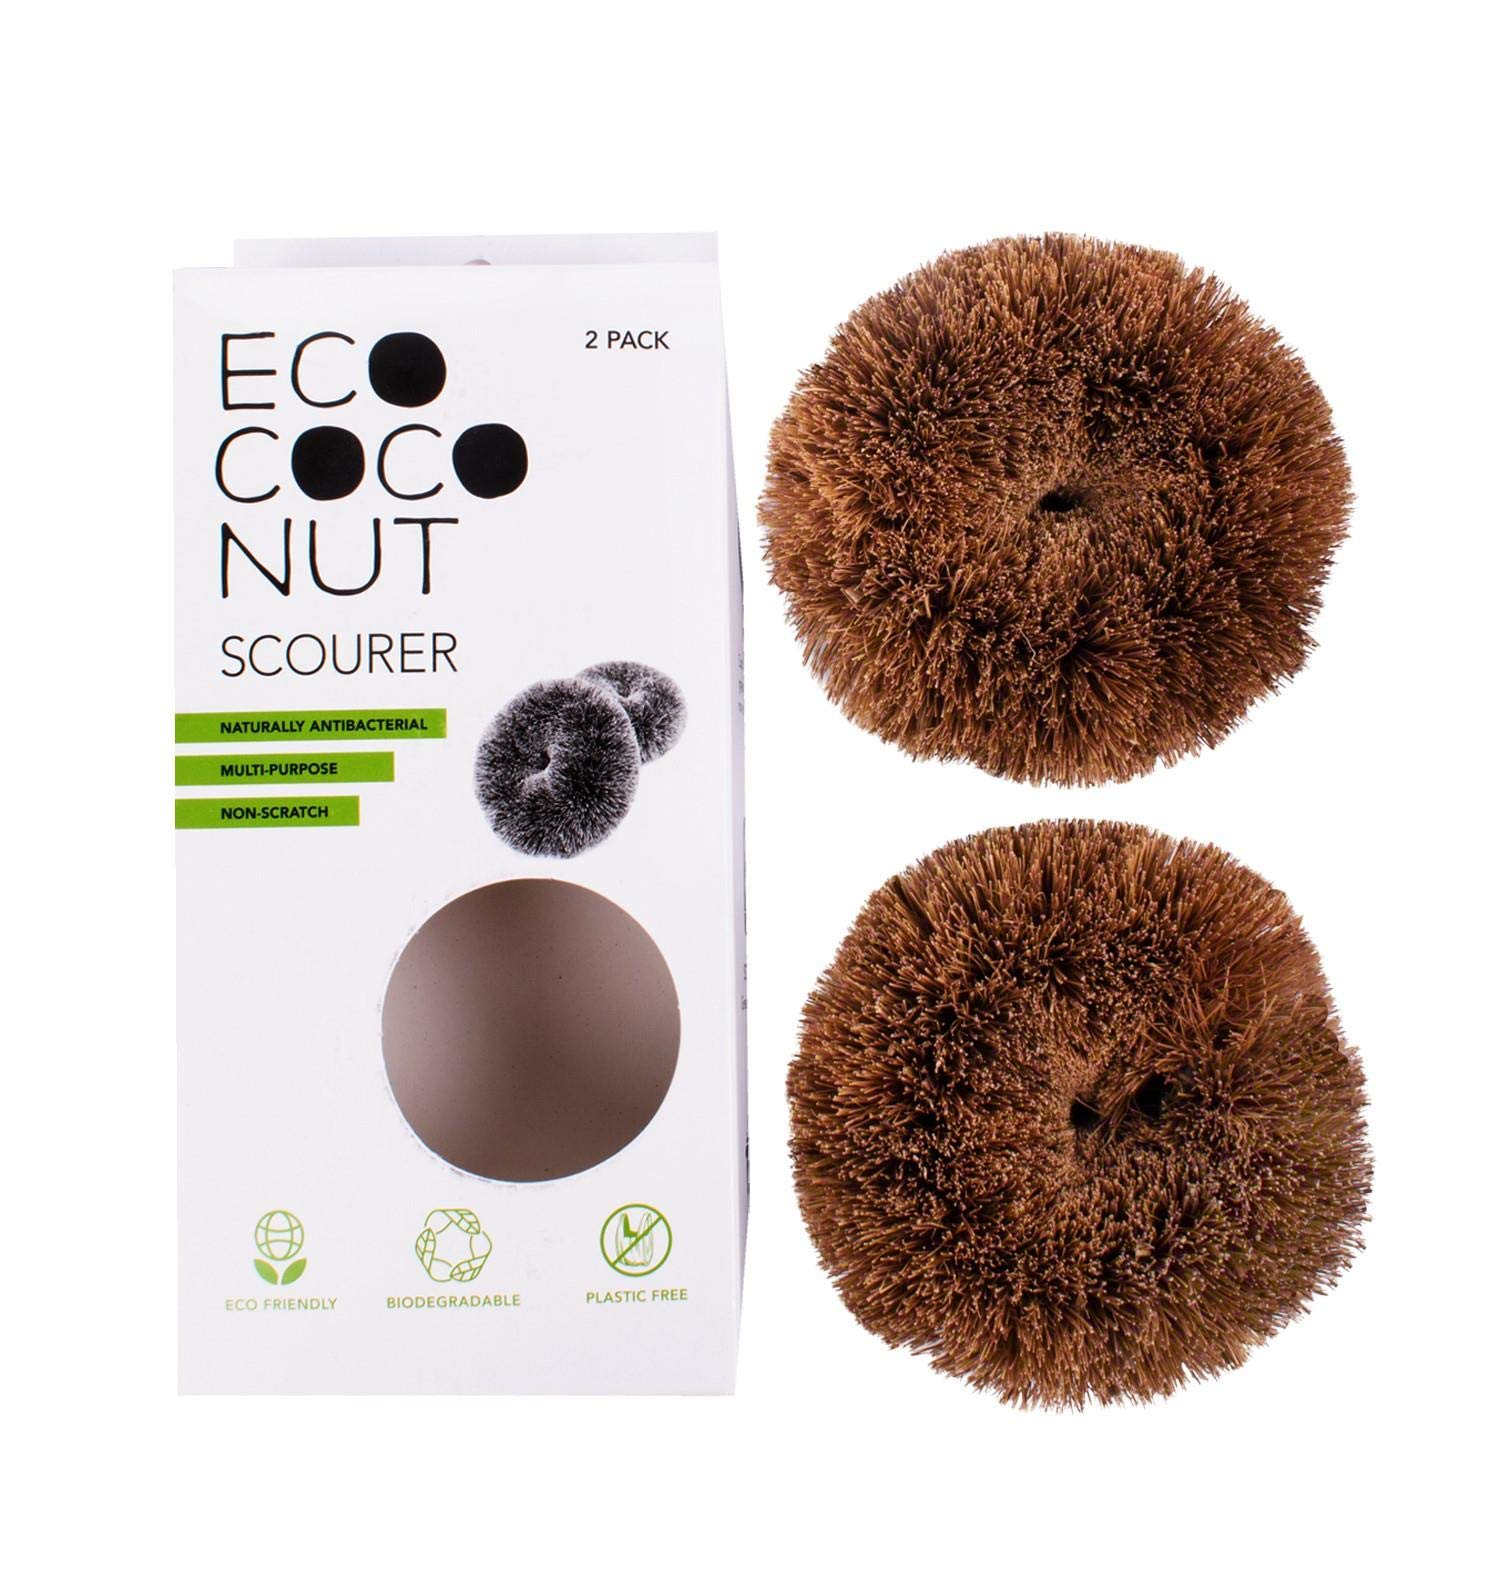 Eco Coconut Eco-Friendly, Multi-Purpose Scourers, Pack of 2 1